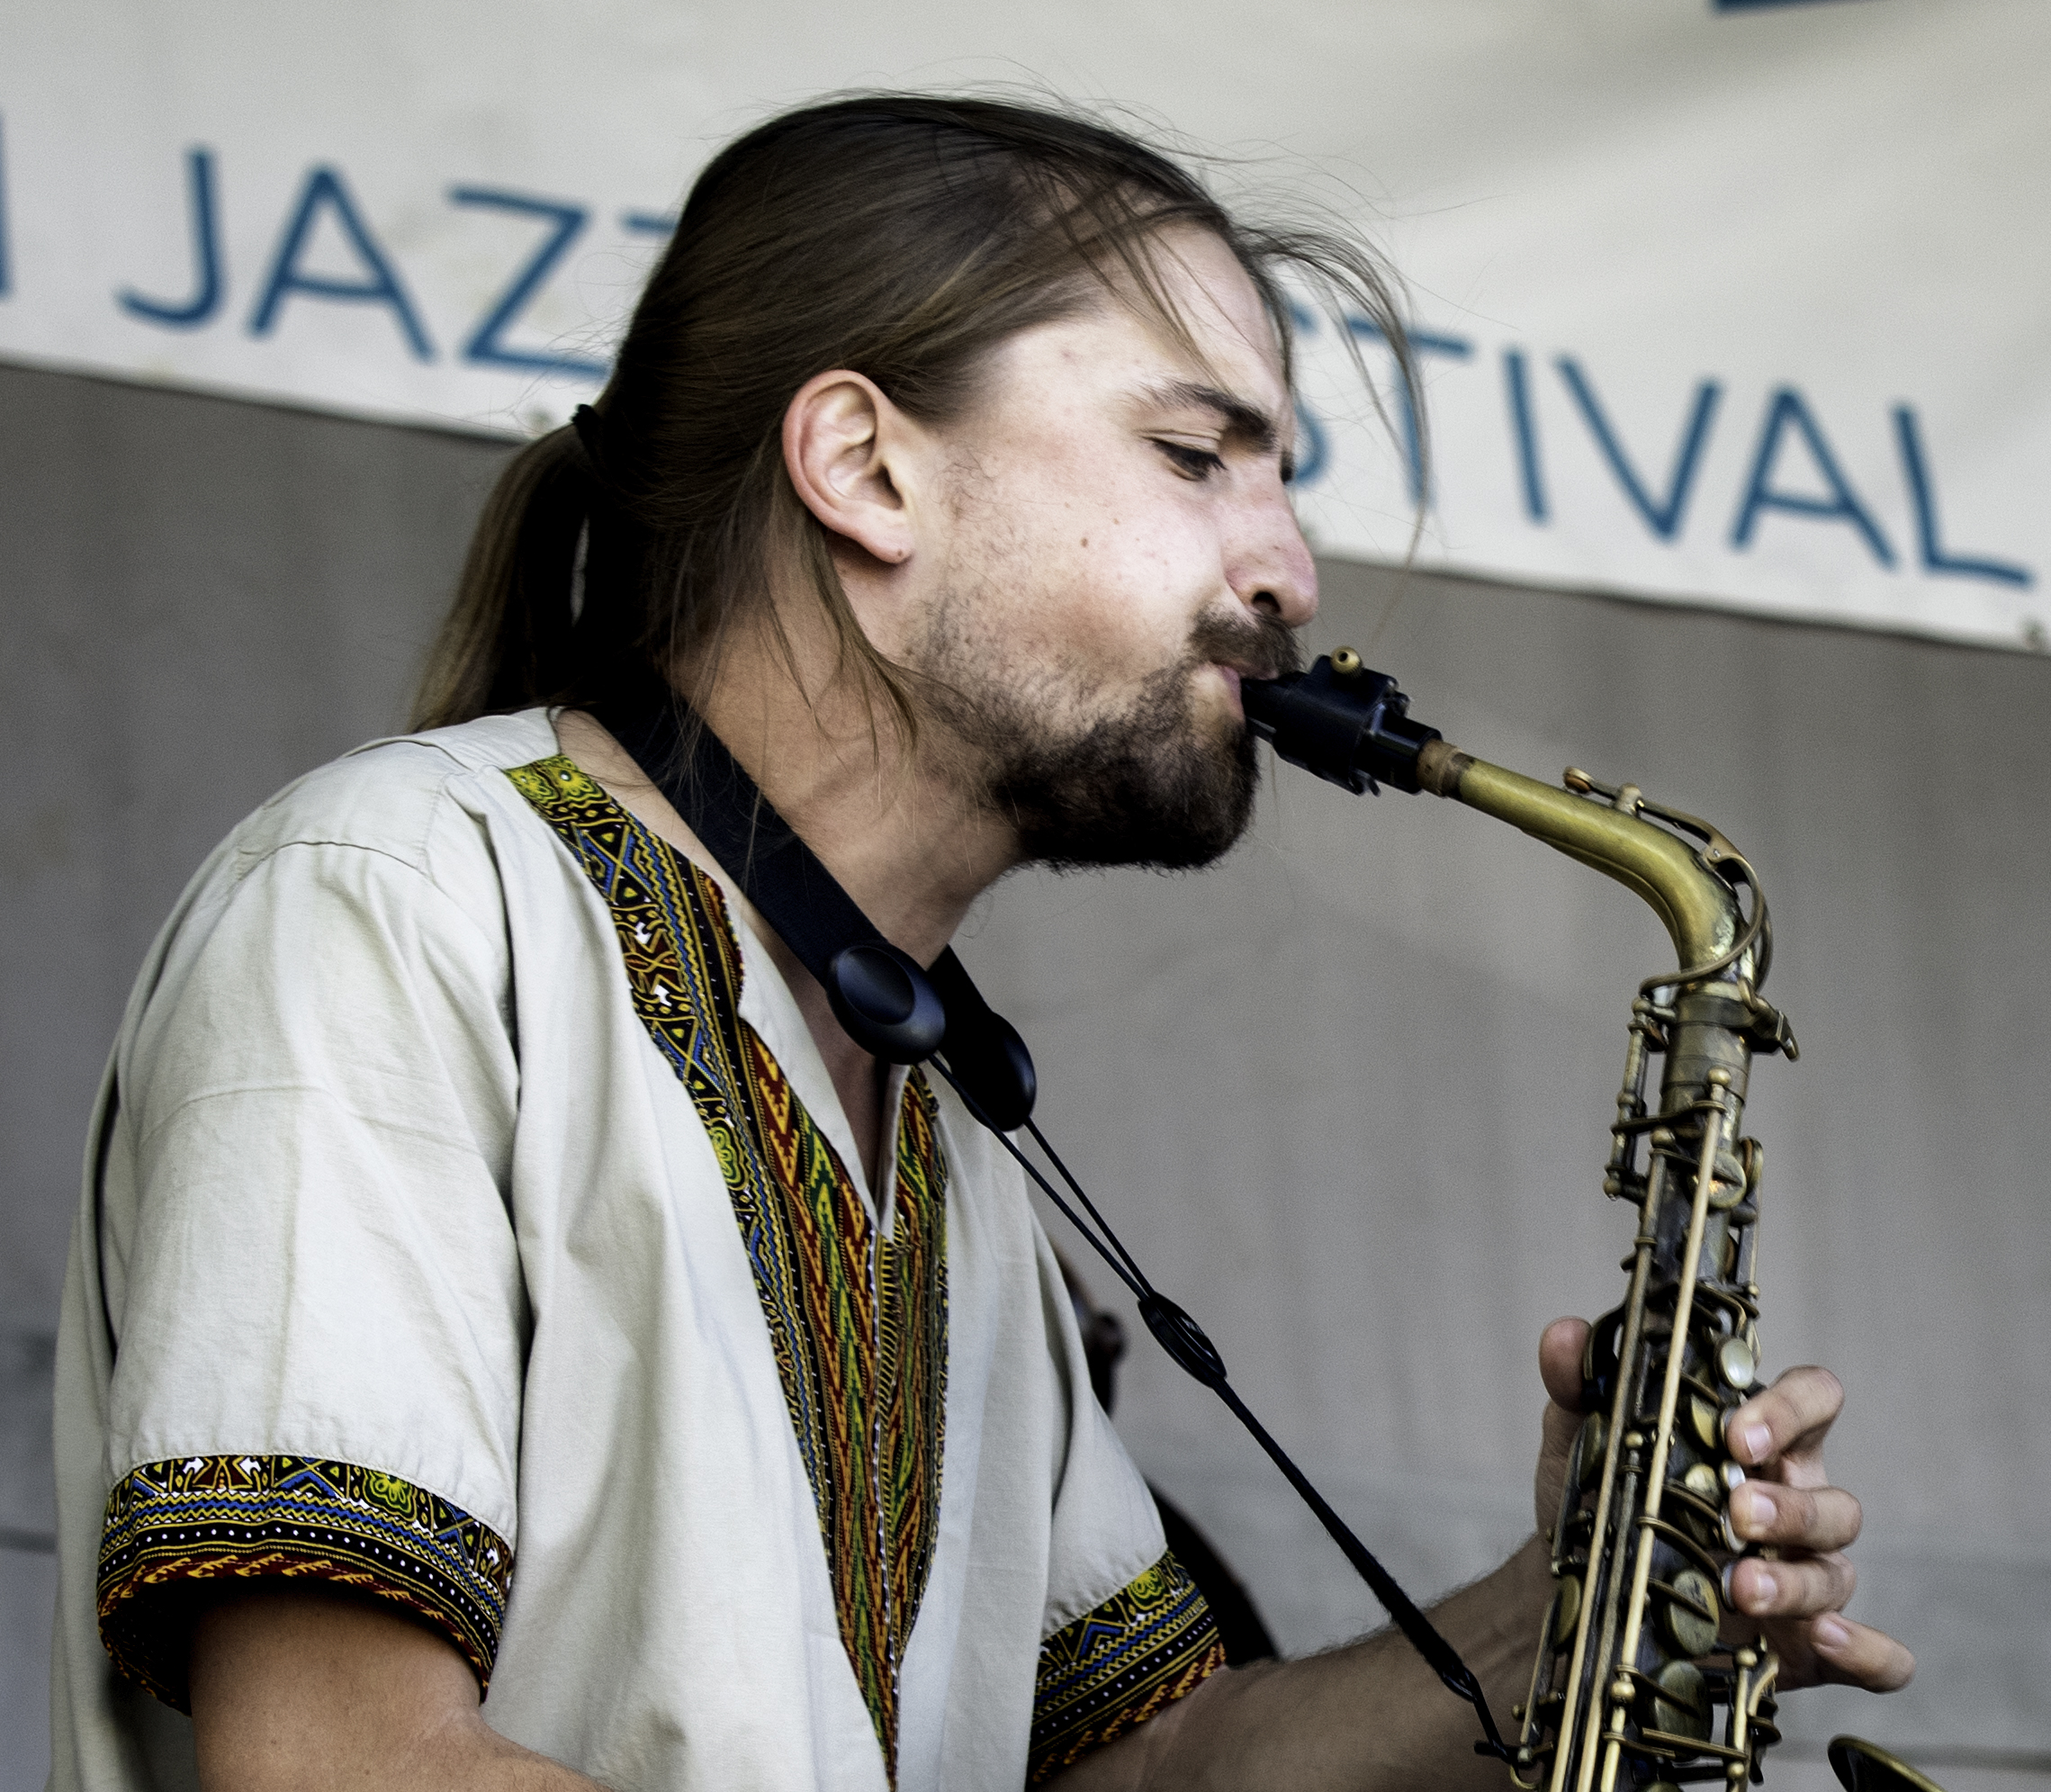 Aurélien Tomasi with the Eyevin Trio at the Guelph Jazz Festival 2019